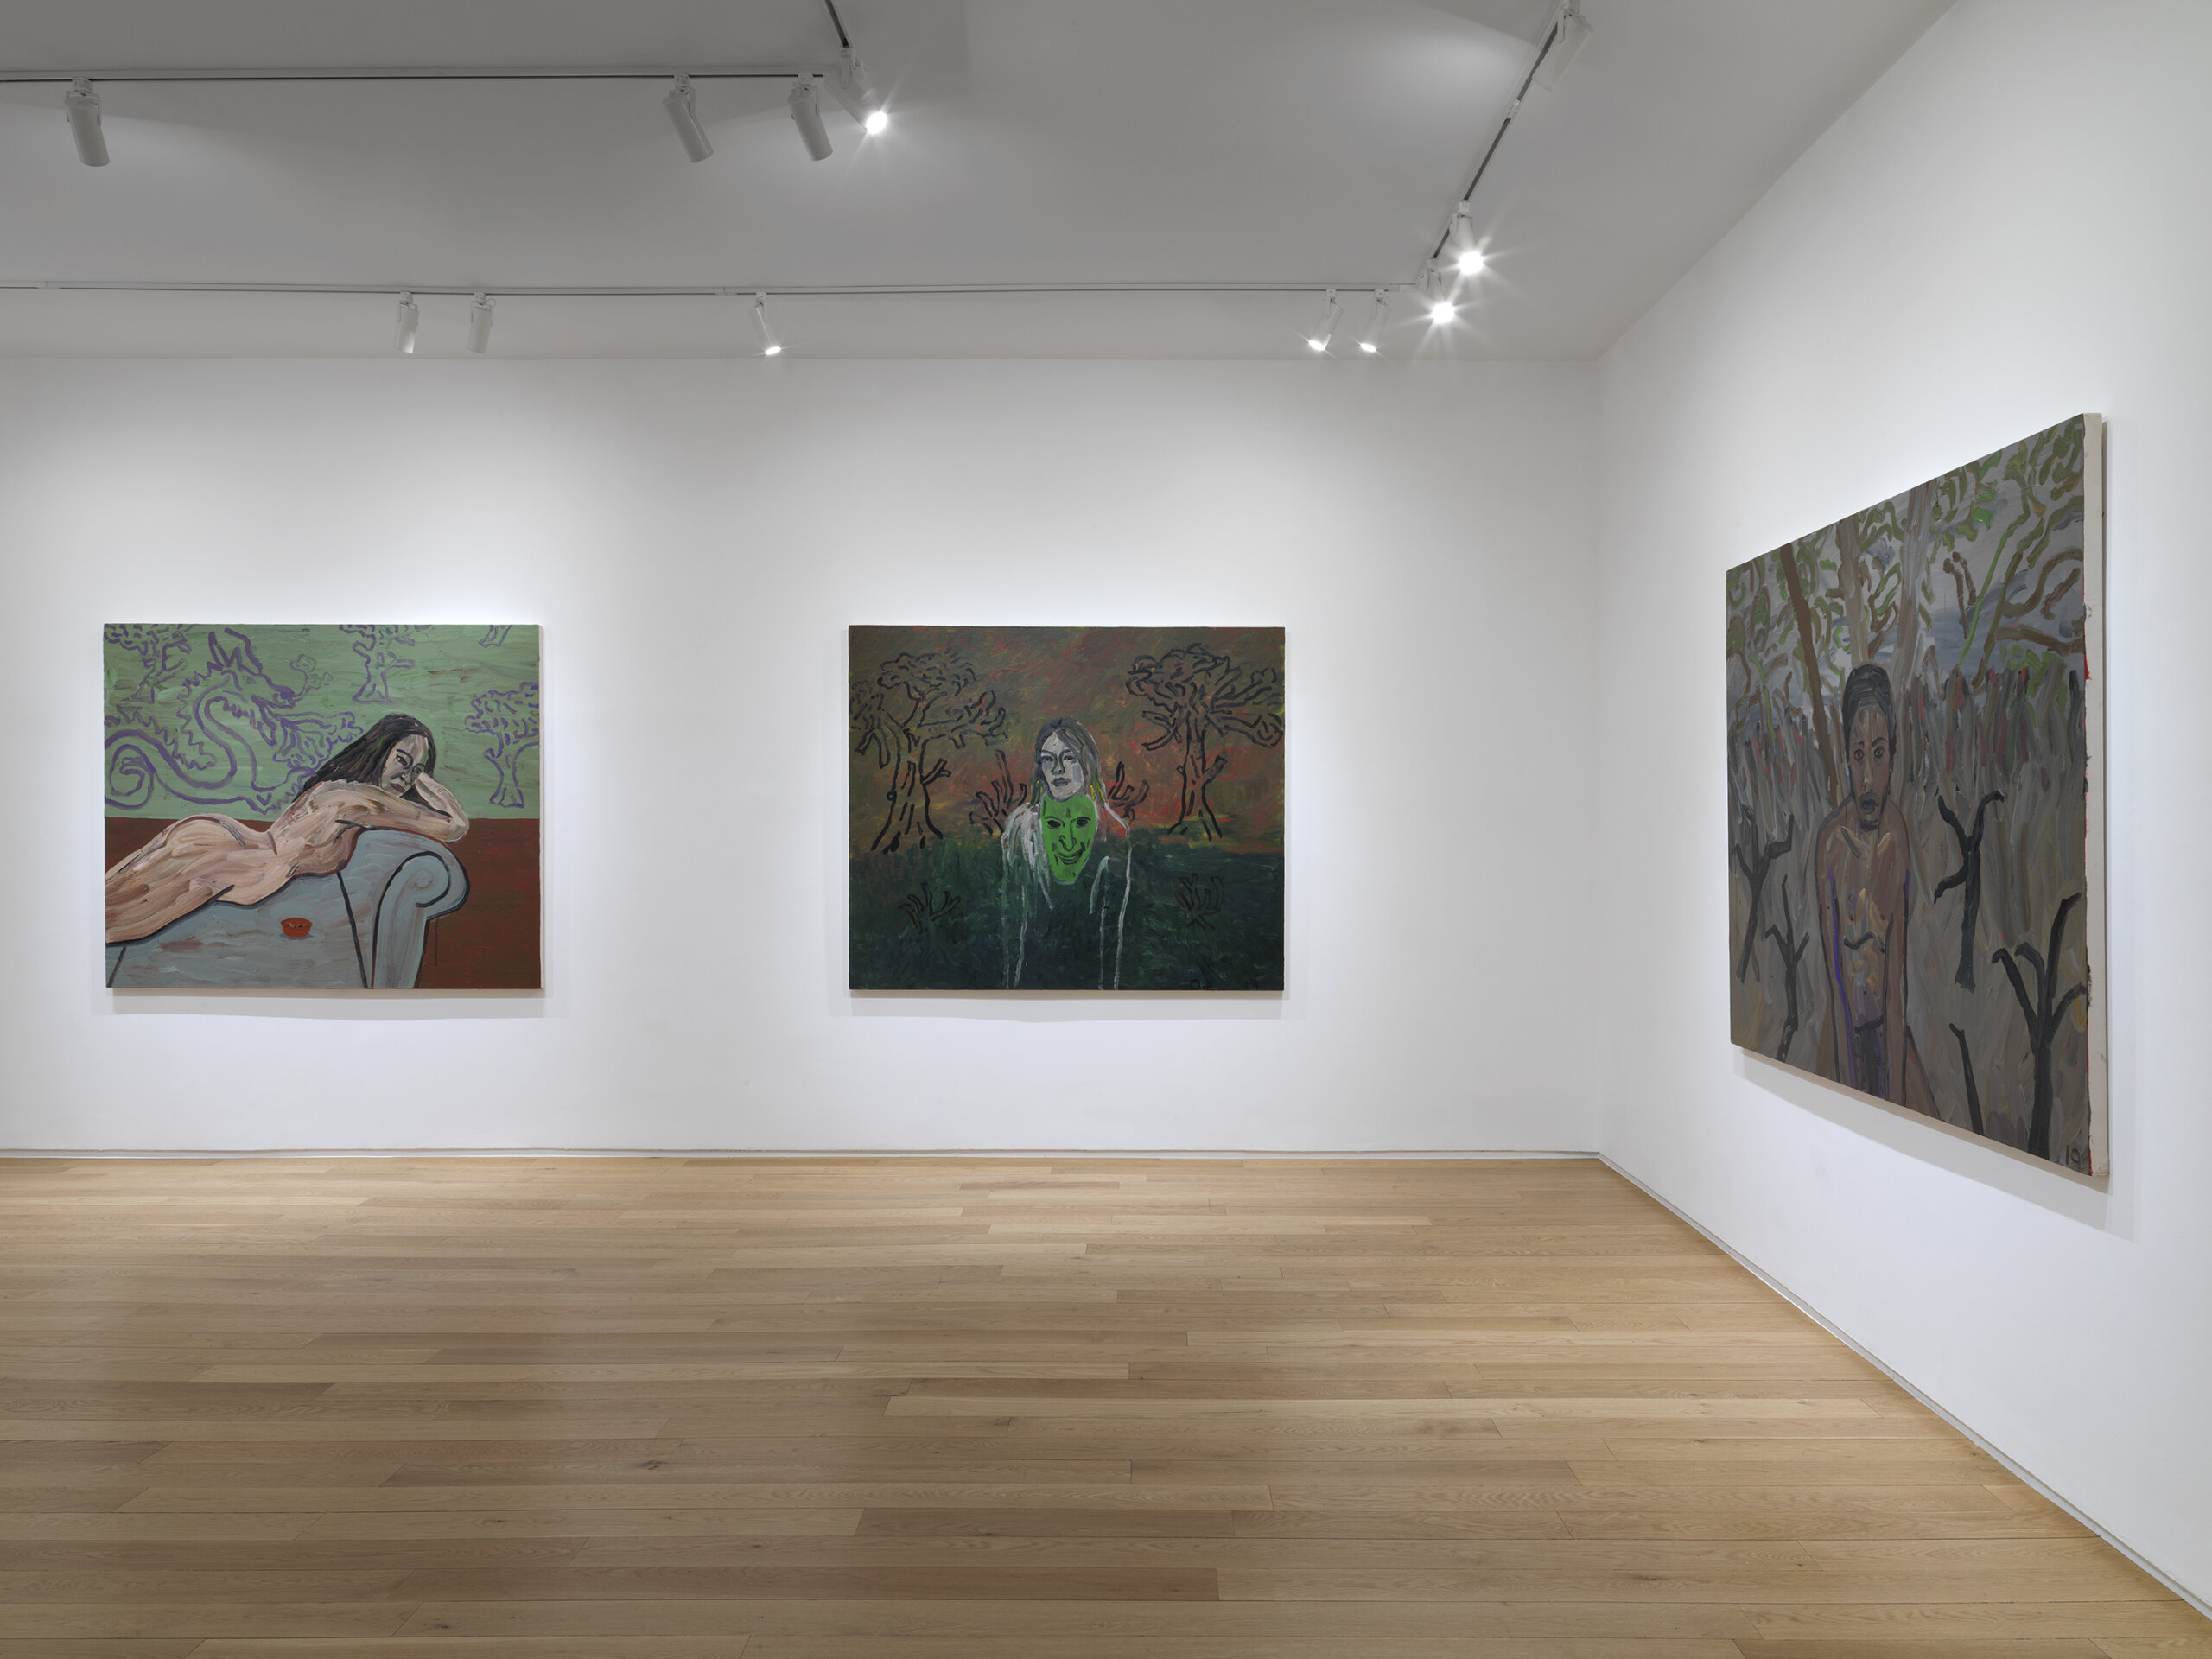 Danny Fox: The Sweet and Burning Hills at Alexander Berggruen